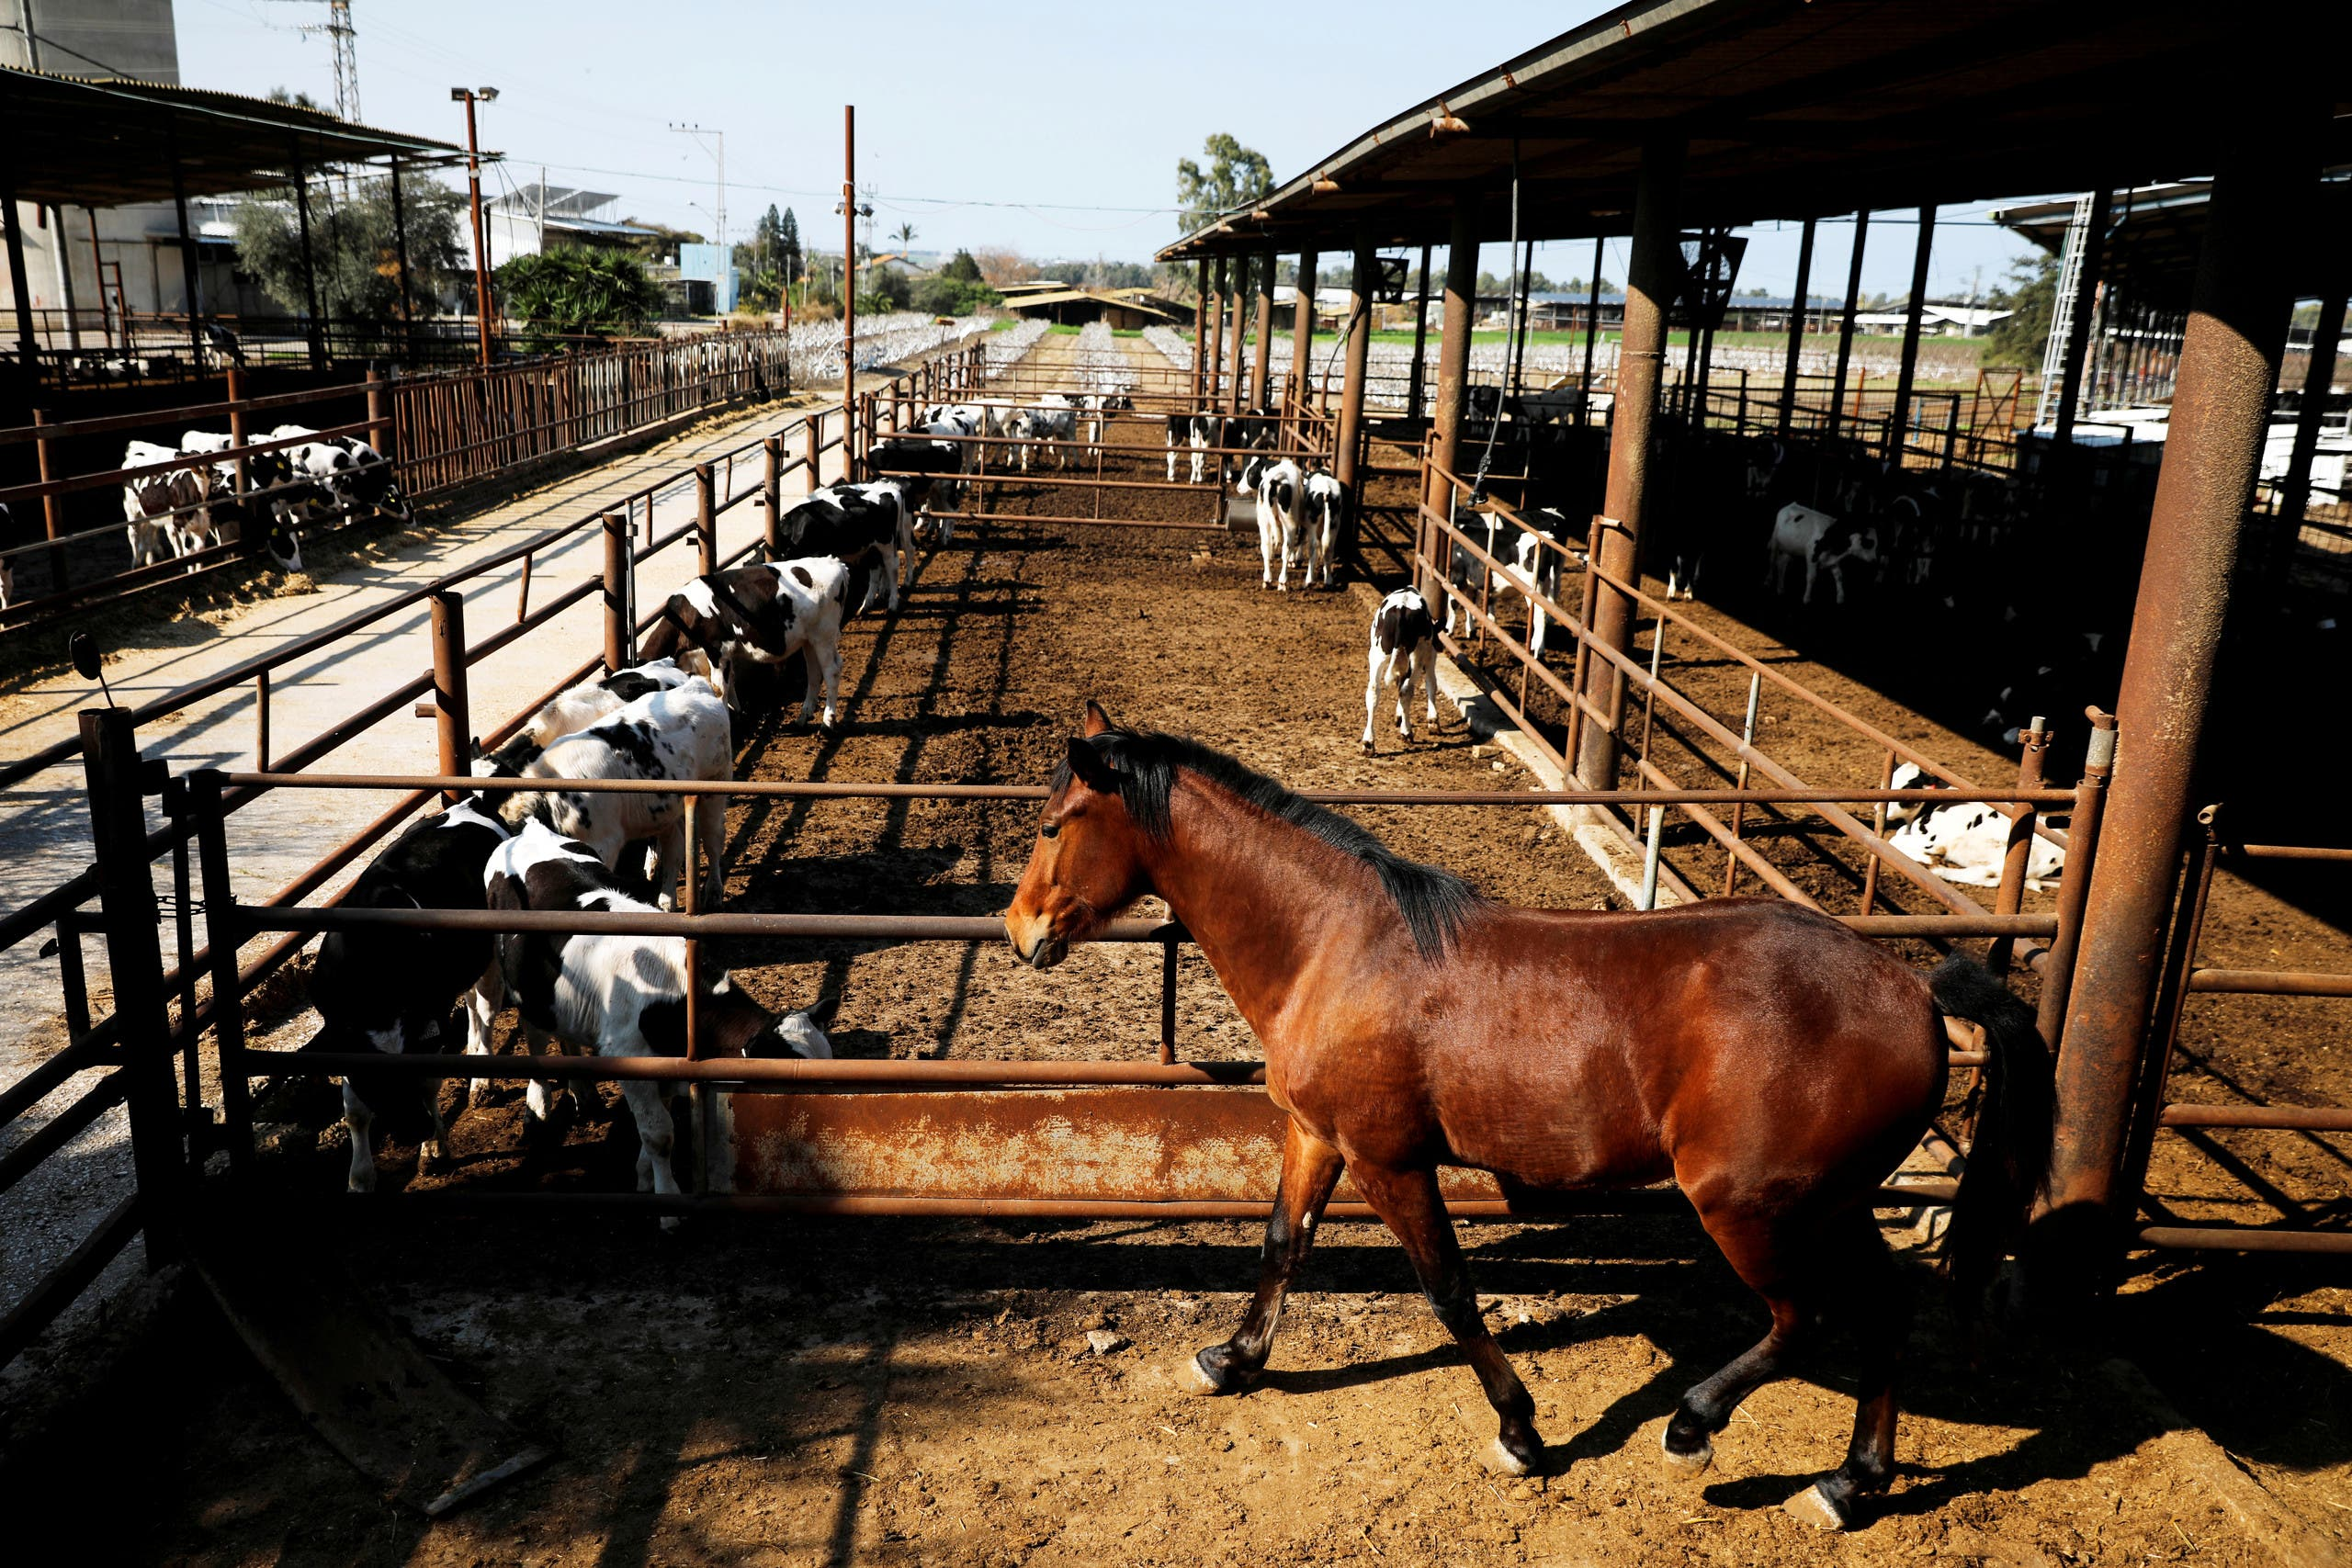 A horse stands next to cow sheds at a farm in Be'er Tuvia, southern Israel February 5, 2020. Picture taken February 5, 2020. (Reuters)